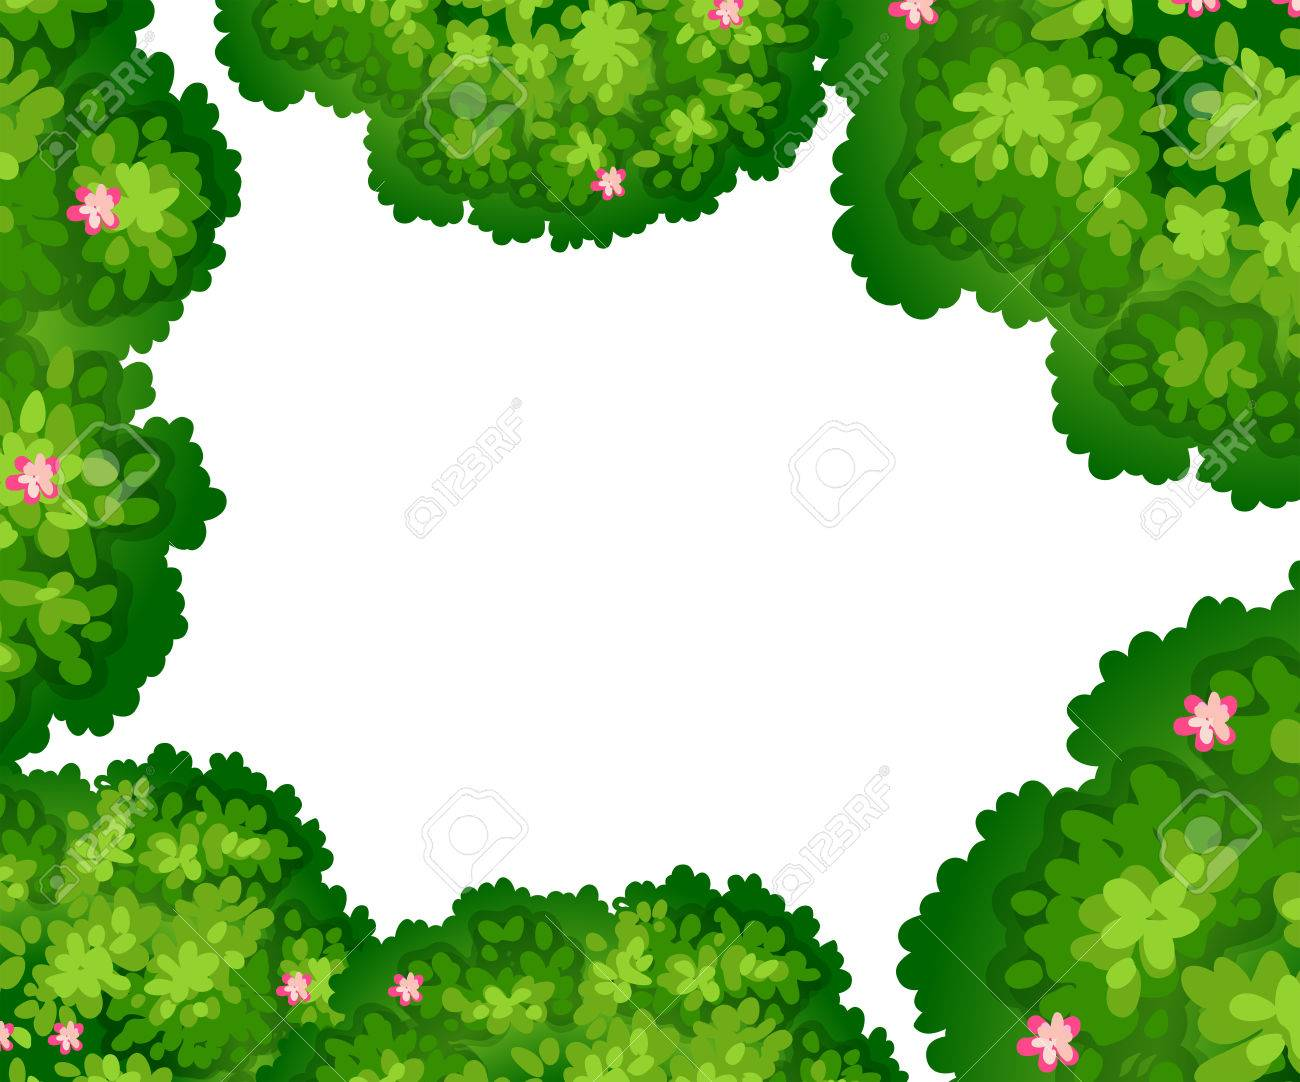 Green Bushes With Pink Flowers Frame On White Paper Royalty Free